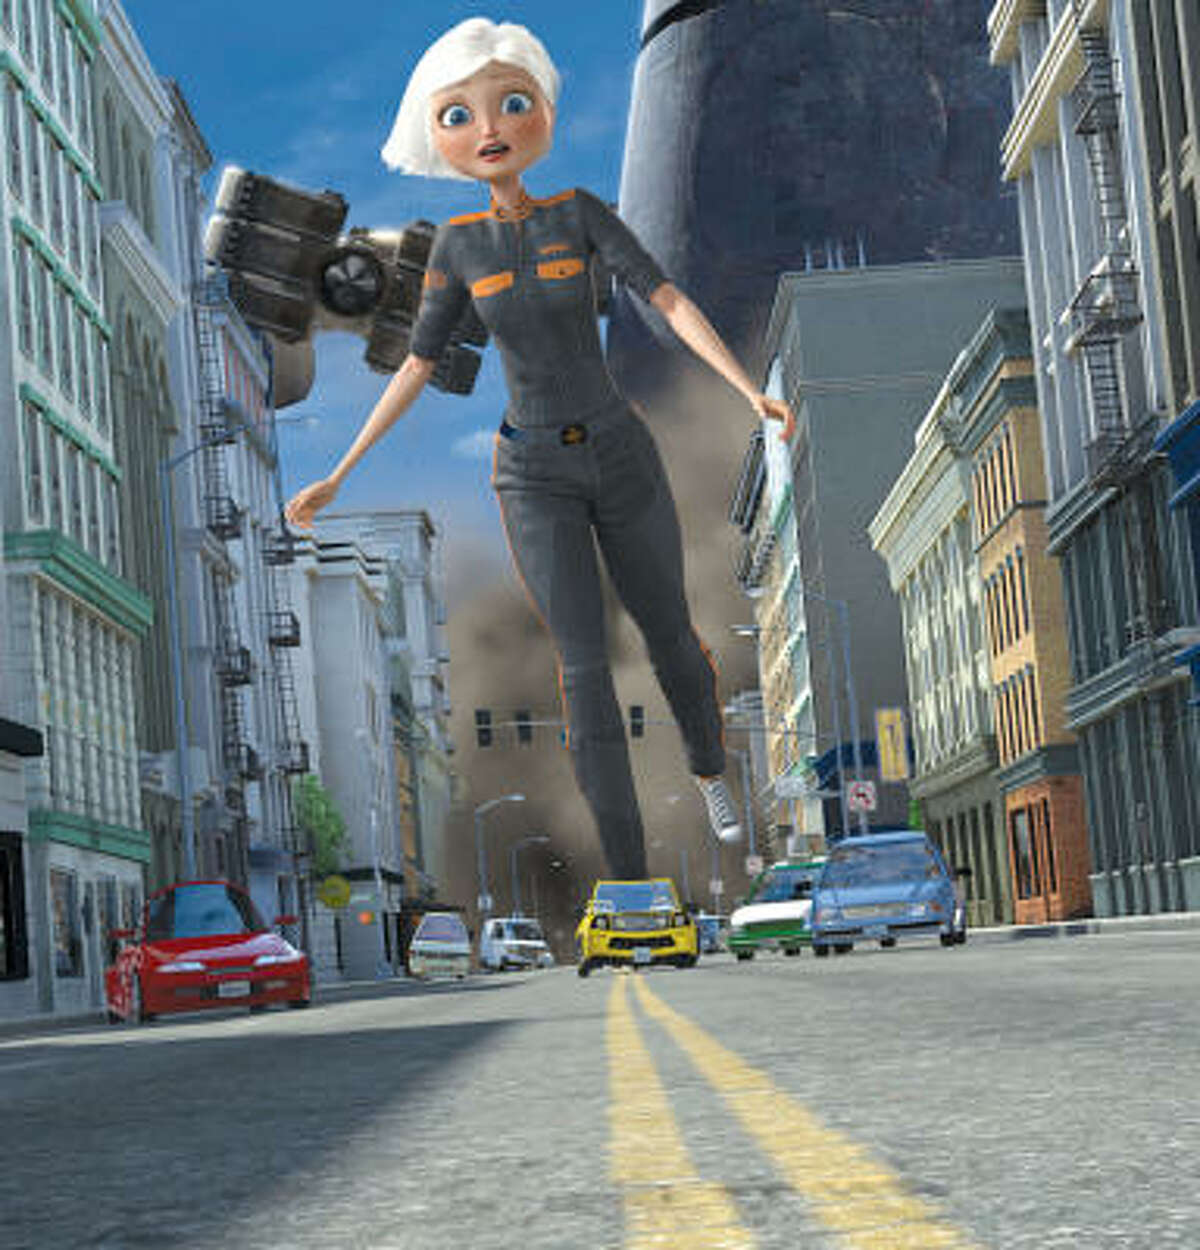 Ginormica (Reese Witherspoon) evades the alien robot by donning taxicab skates in Monsters vs. Aliens.